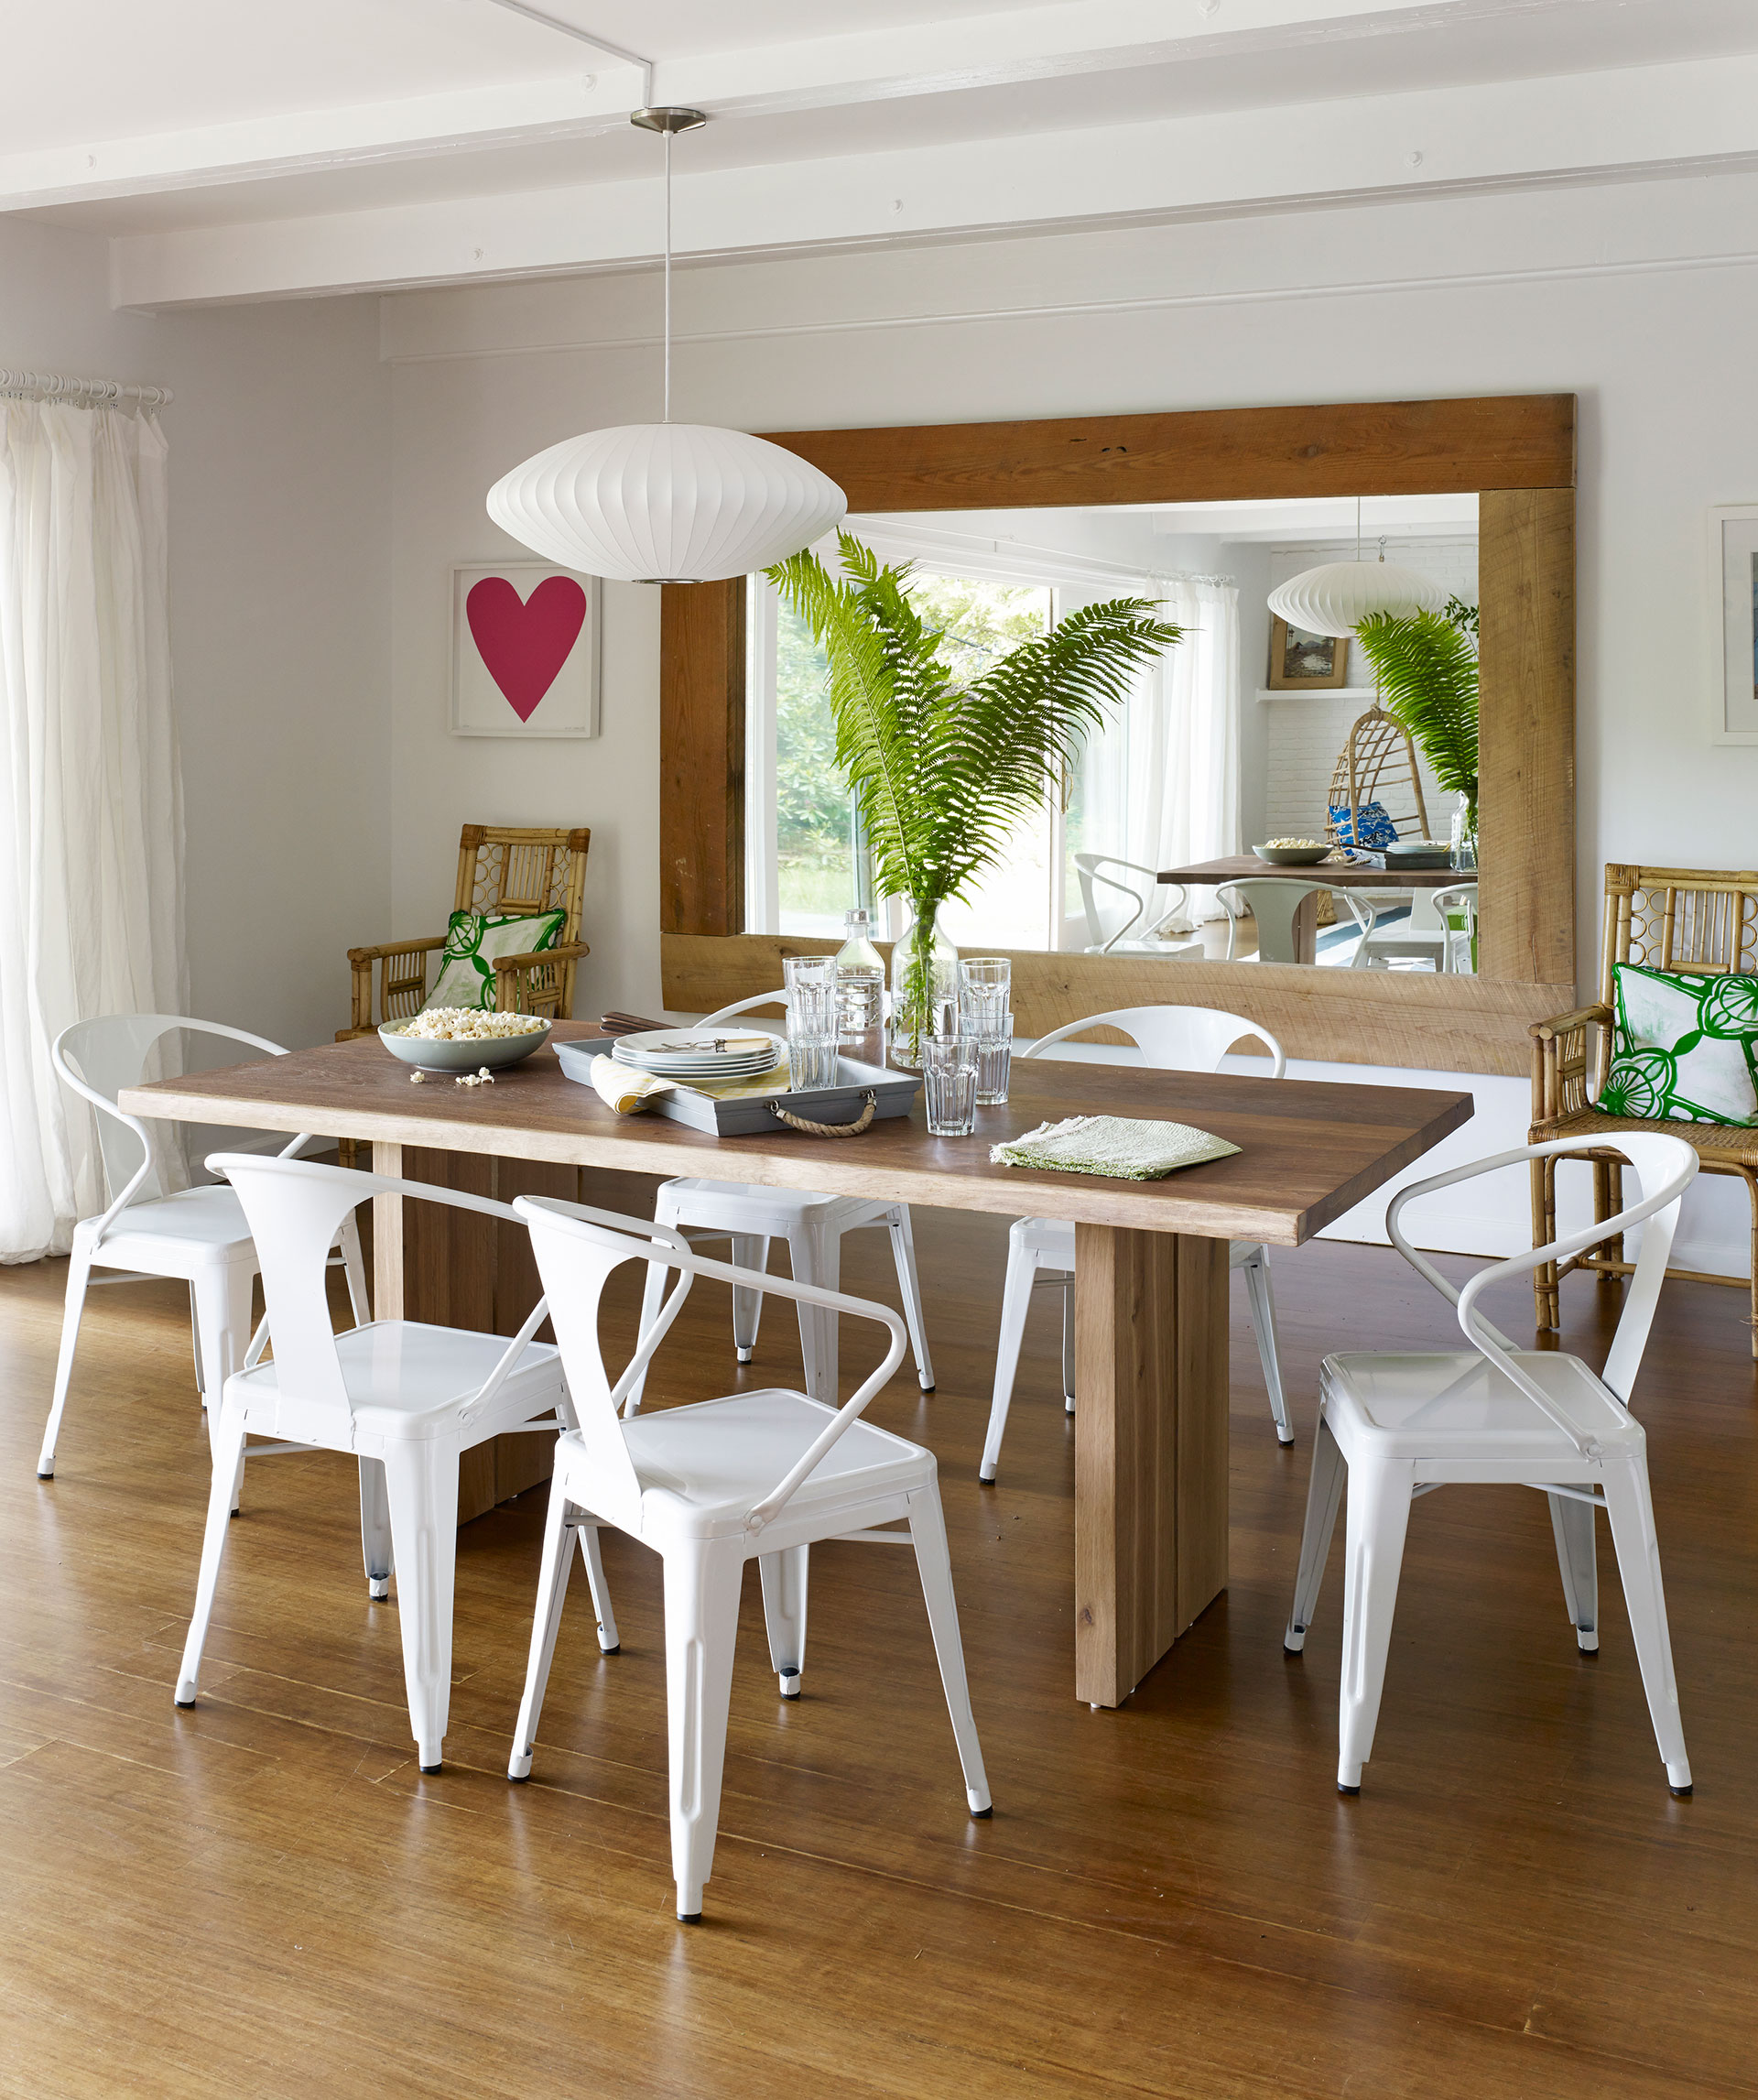 Kitchen Dining Rooms Designs Ideas. 85 Best Dining Room